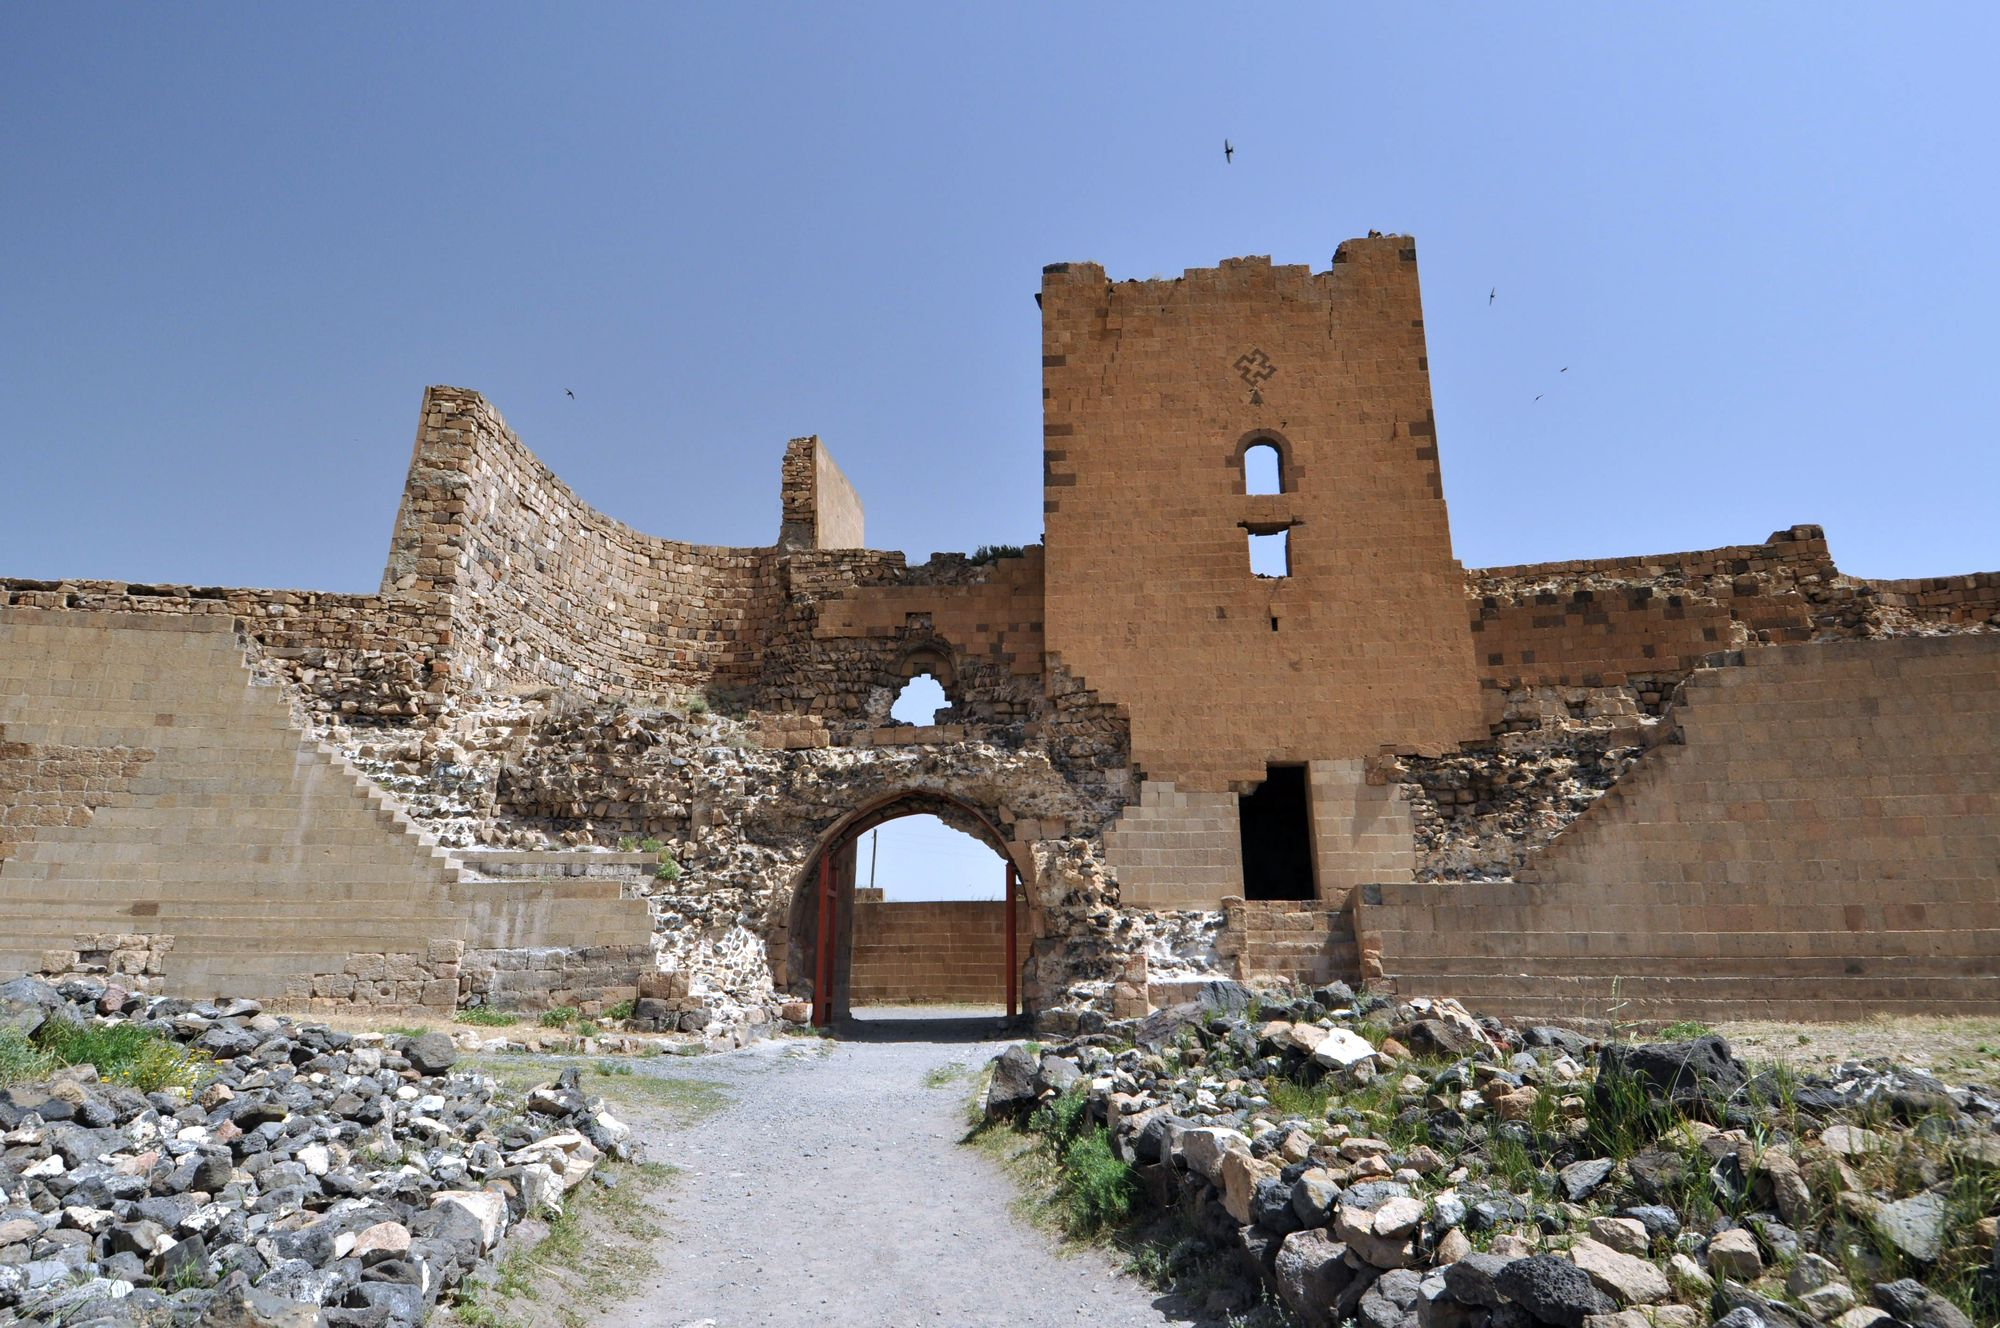 The city gate and fortifications of Ani